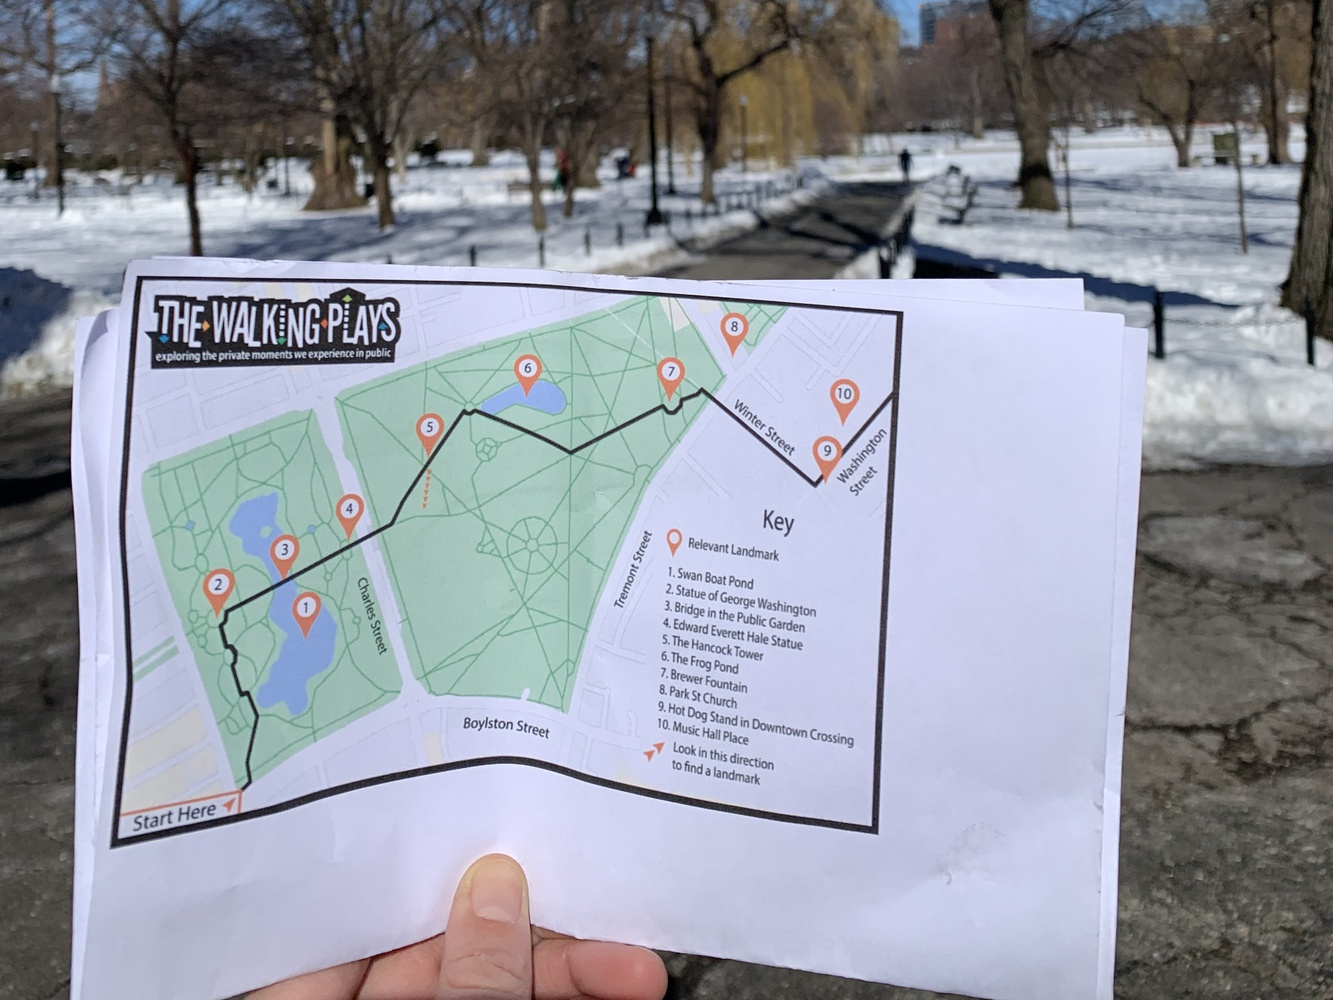 The Walking Play outlines a specific path to take through Boston Common which corresponds to key events in the accompanying audio.